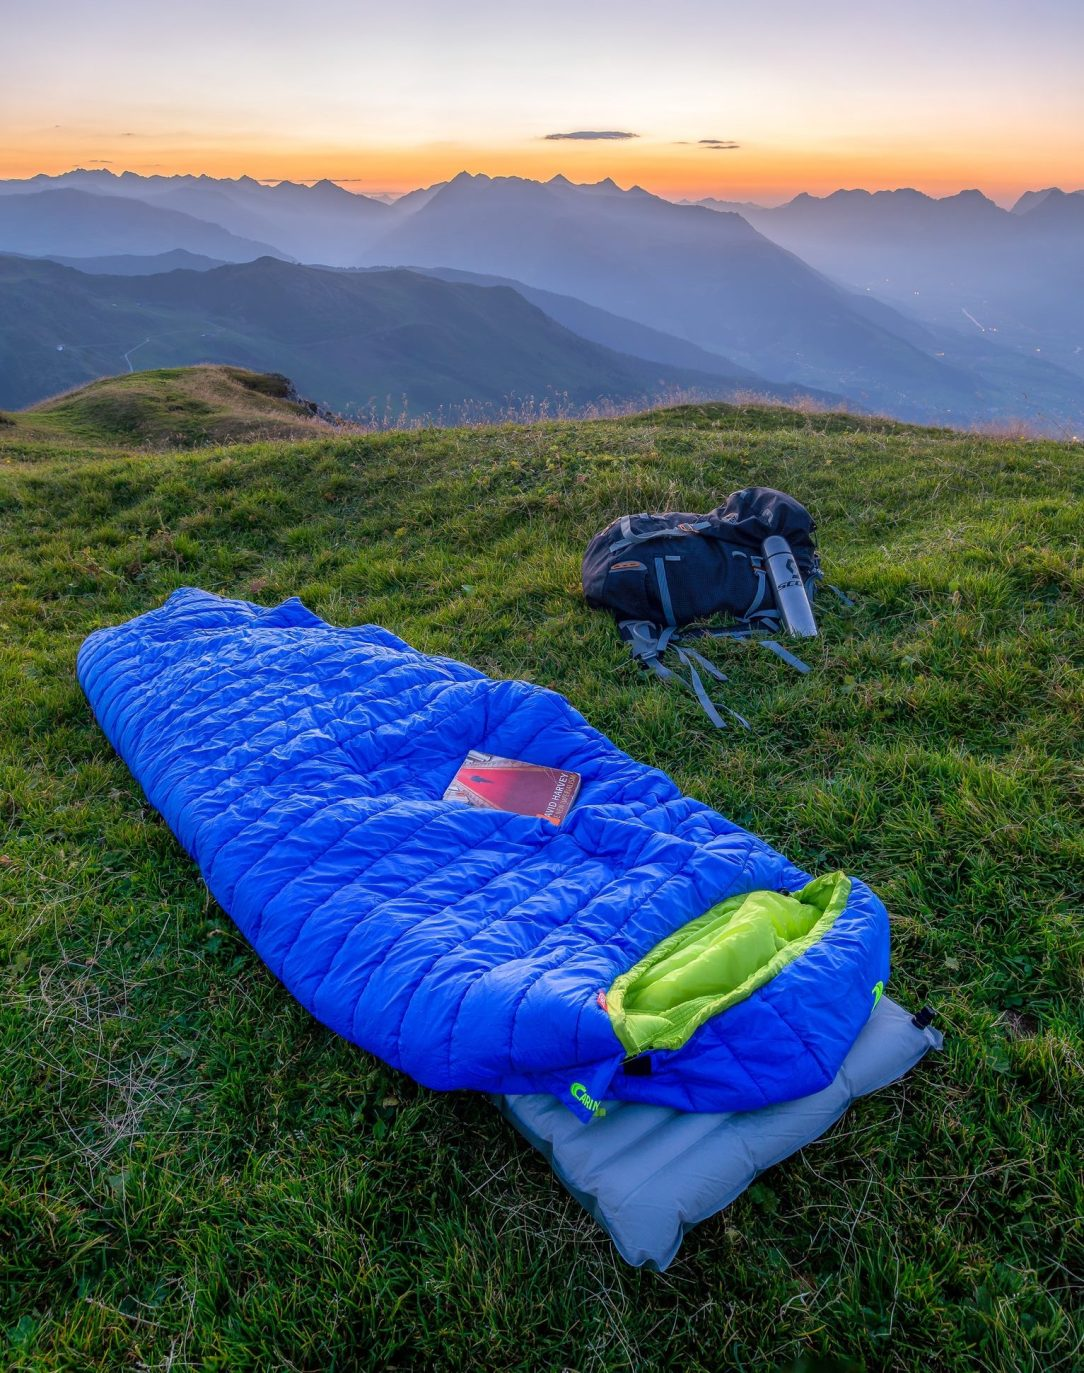 Buying the right sleeping bag made simple